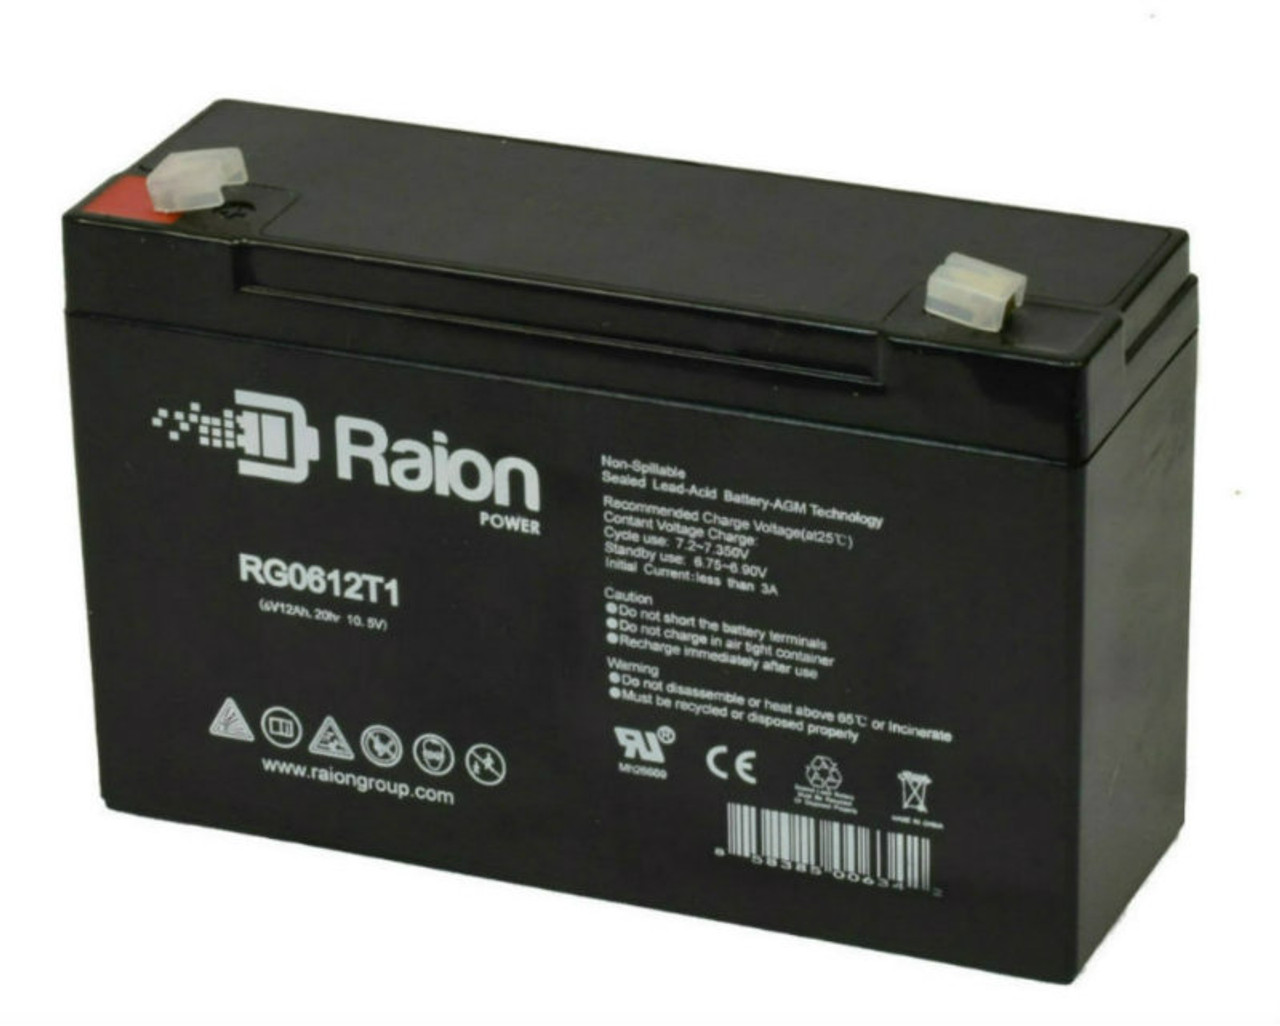 Raion Power RG06120T1 Replacement Battery Pack for York-Wide Light NB106 emergency light